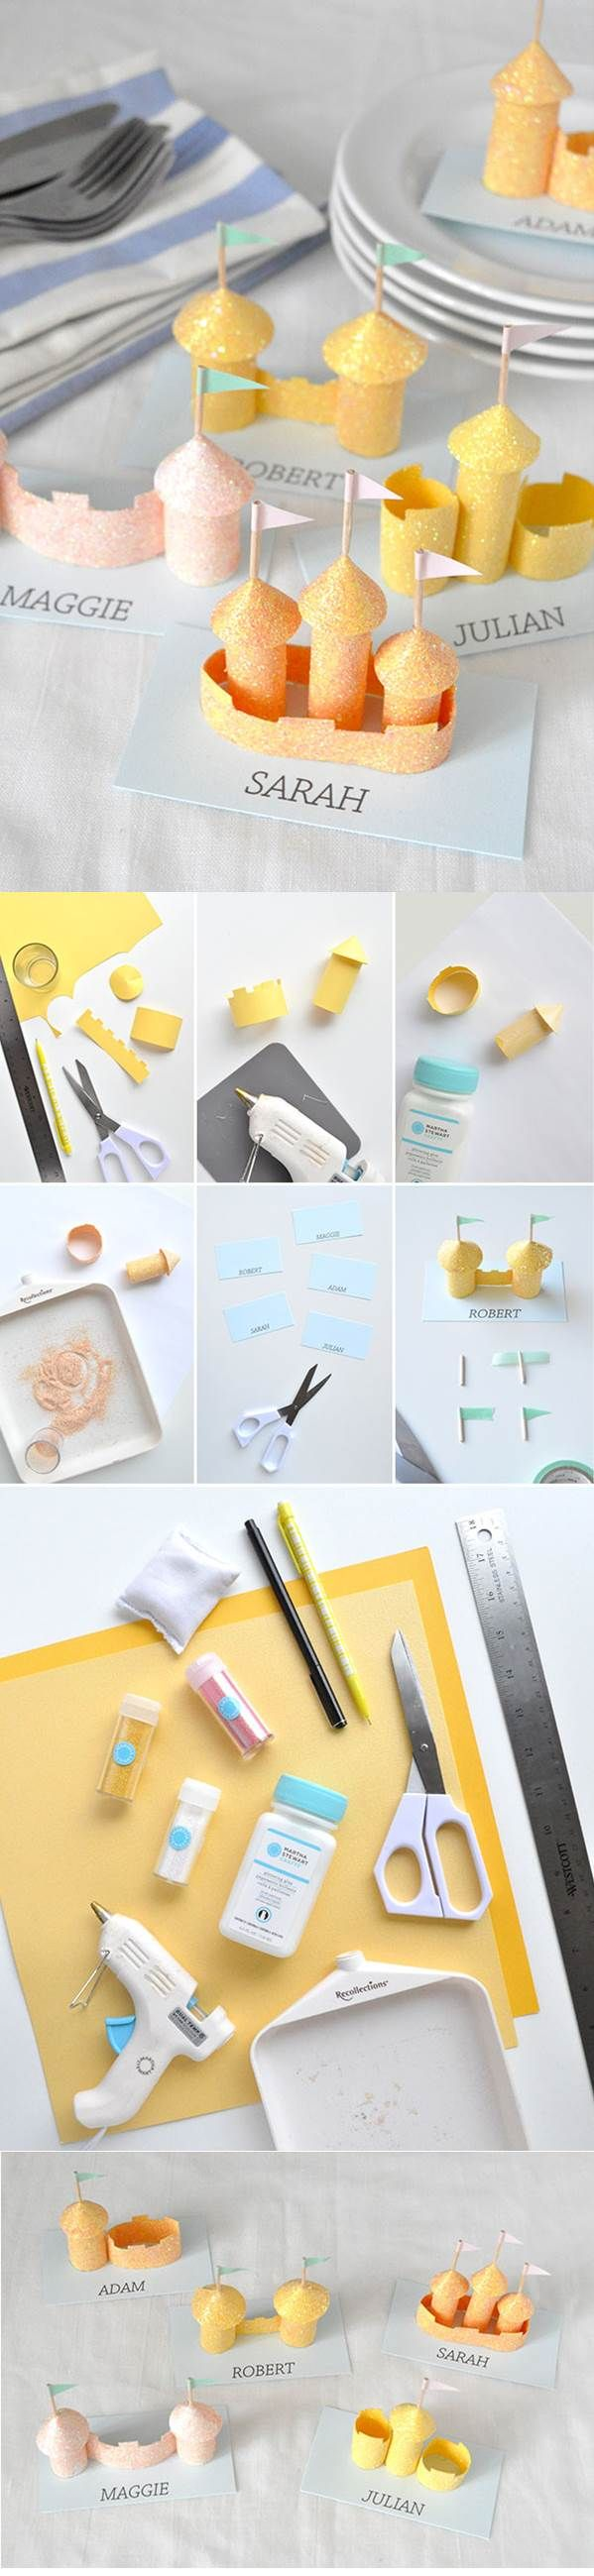 DIY these gorgeous beach-inspired place cards with #marthastewartcrafts glitter!Beach Inspiration Places, Marthastewartcrafts Glitter, Diy Beach Inspiration, Castles Places, Cards Diy, Places Cards, Gorgeous Beach Inspiration, Cards Marthastewartcrafts, With Your